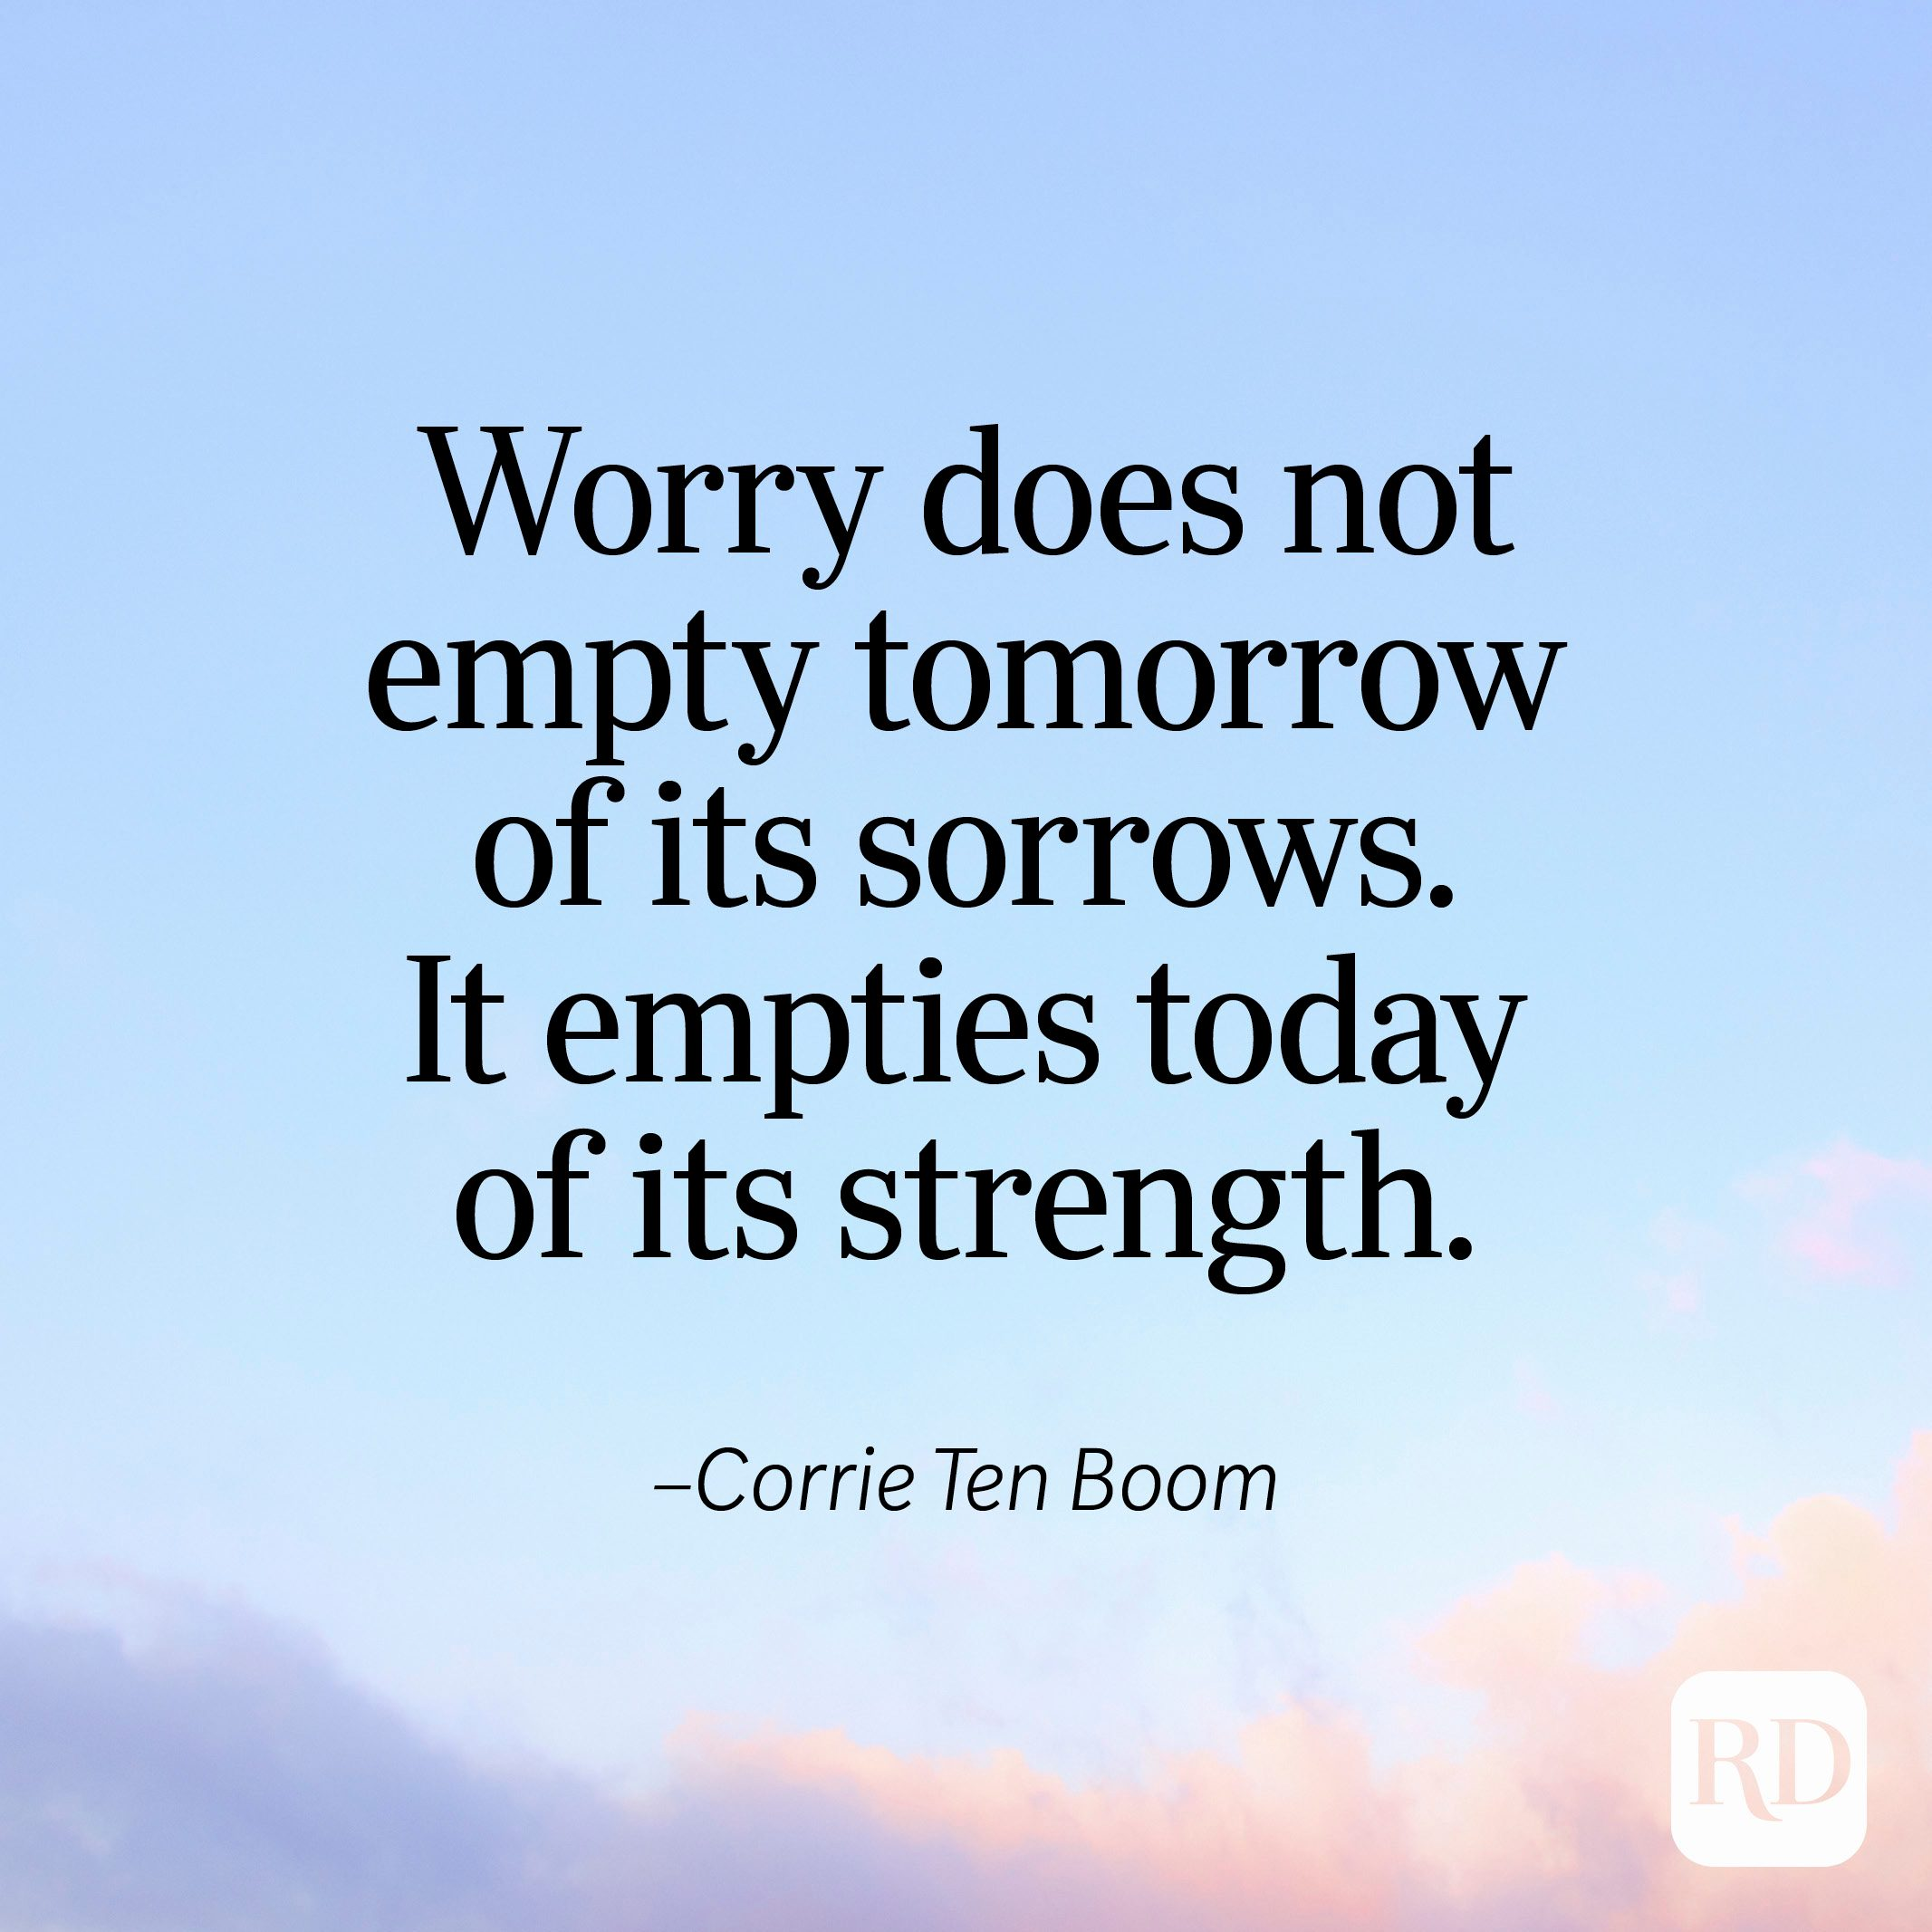 """""""Worry does not empty tomorrow of its sorrows. It empties today of its strength."""" —Corrie Ten Boom"""